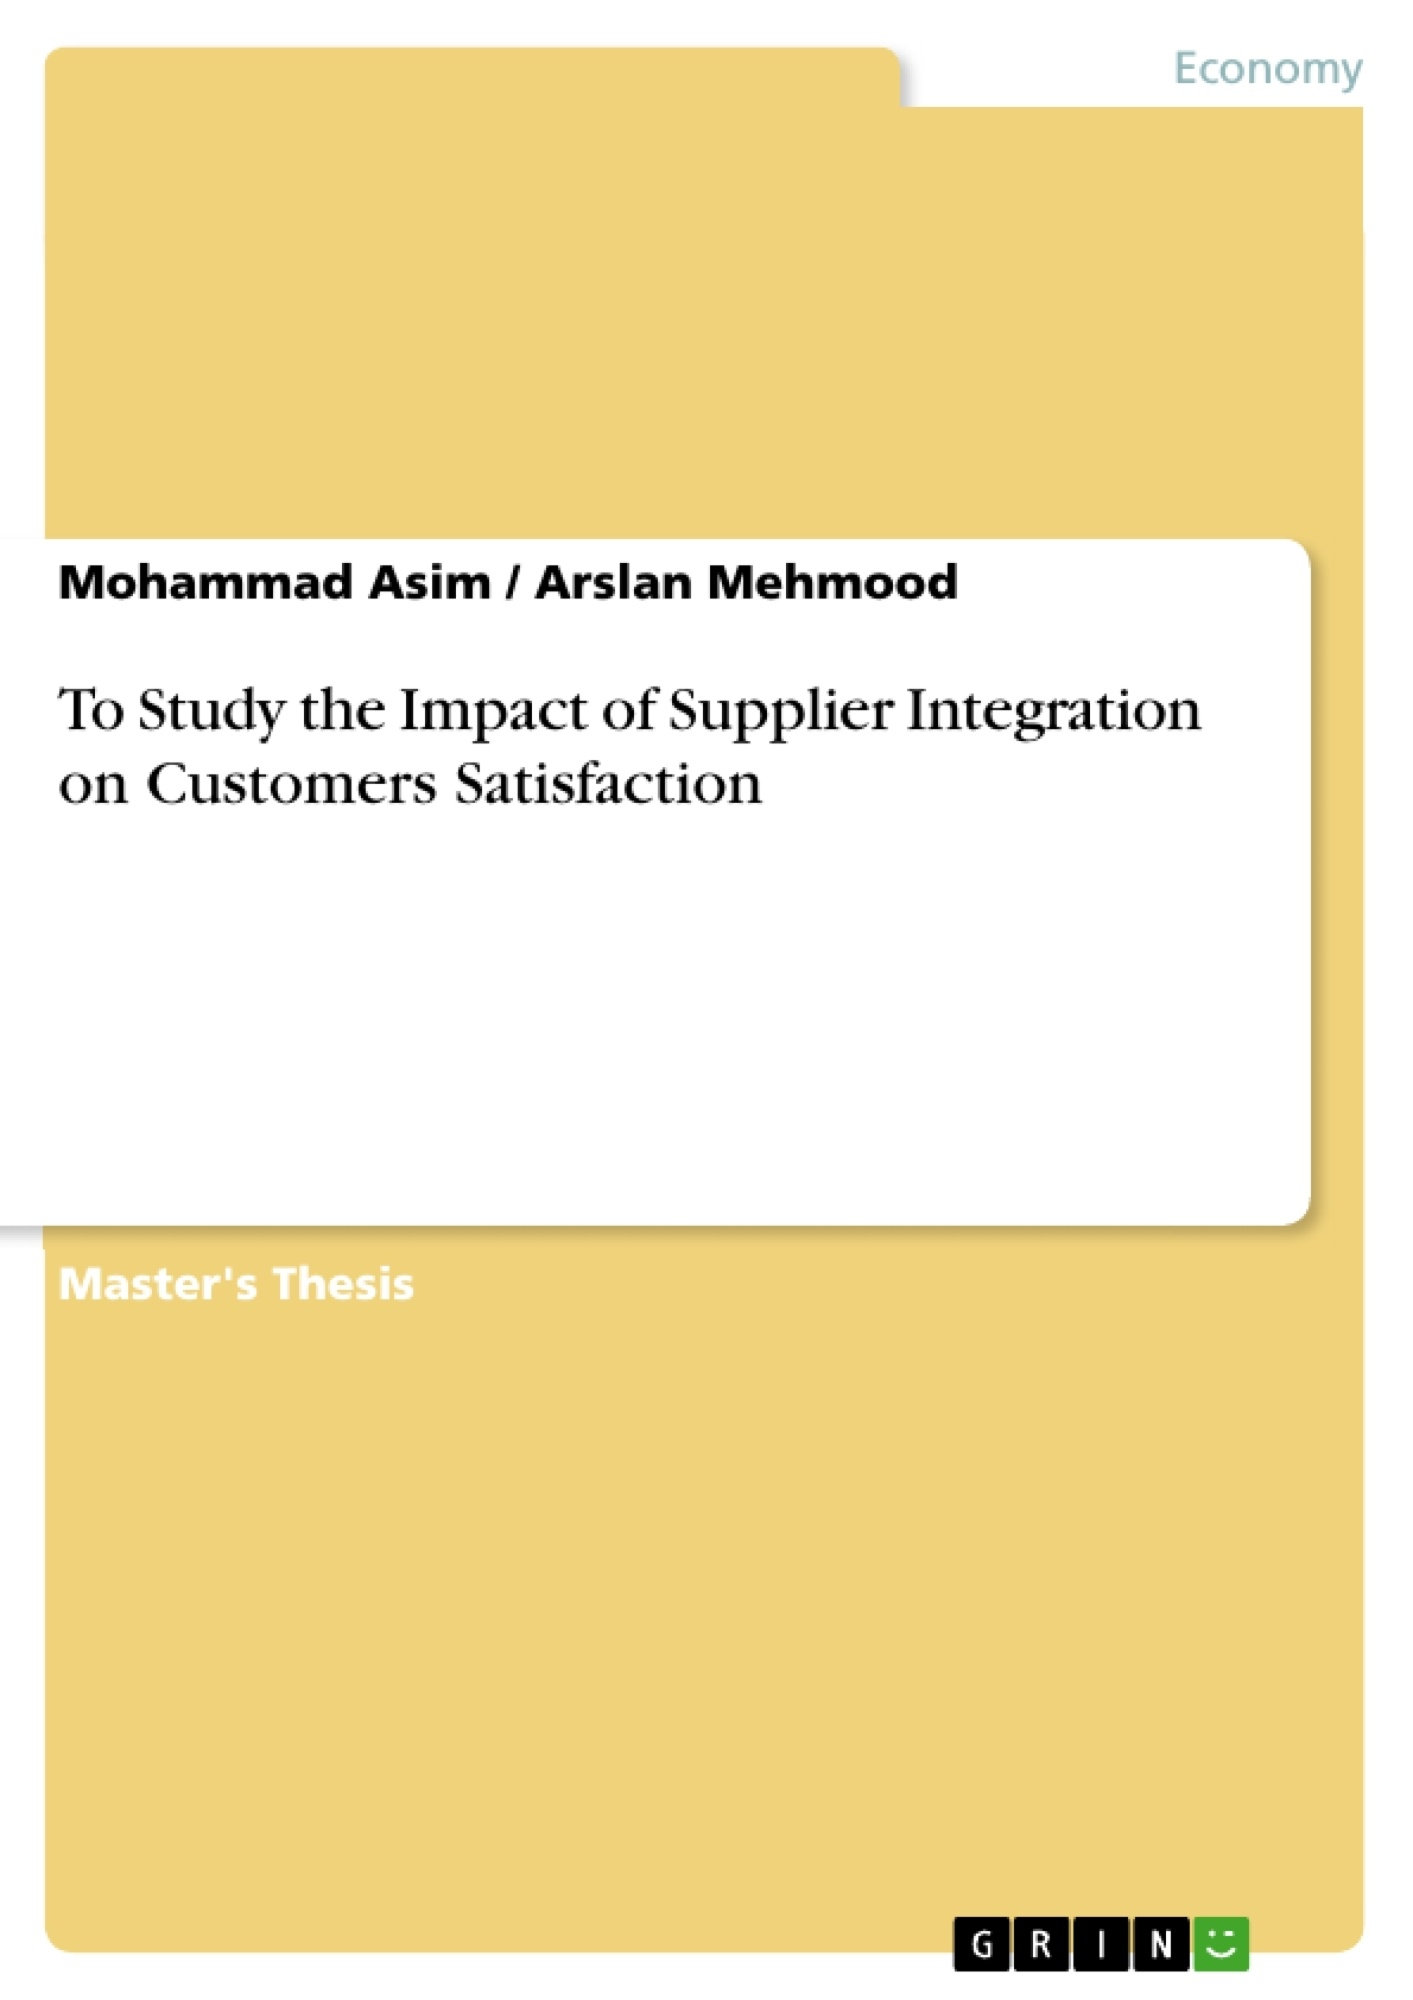 Title: To Study the Impact of Supplier Integration on Customers Satisfaction